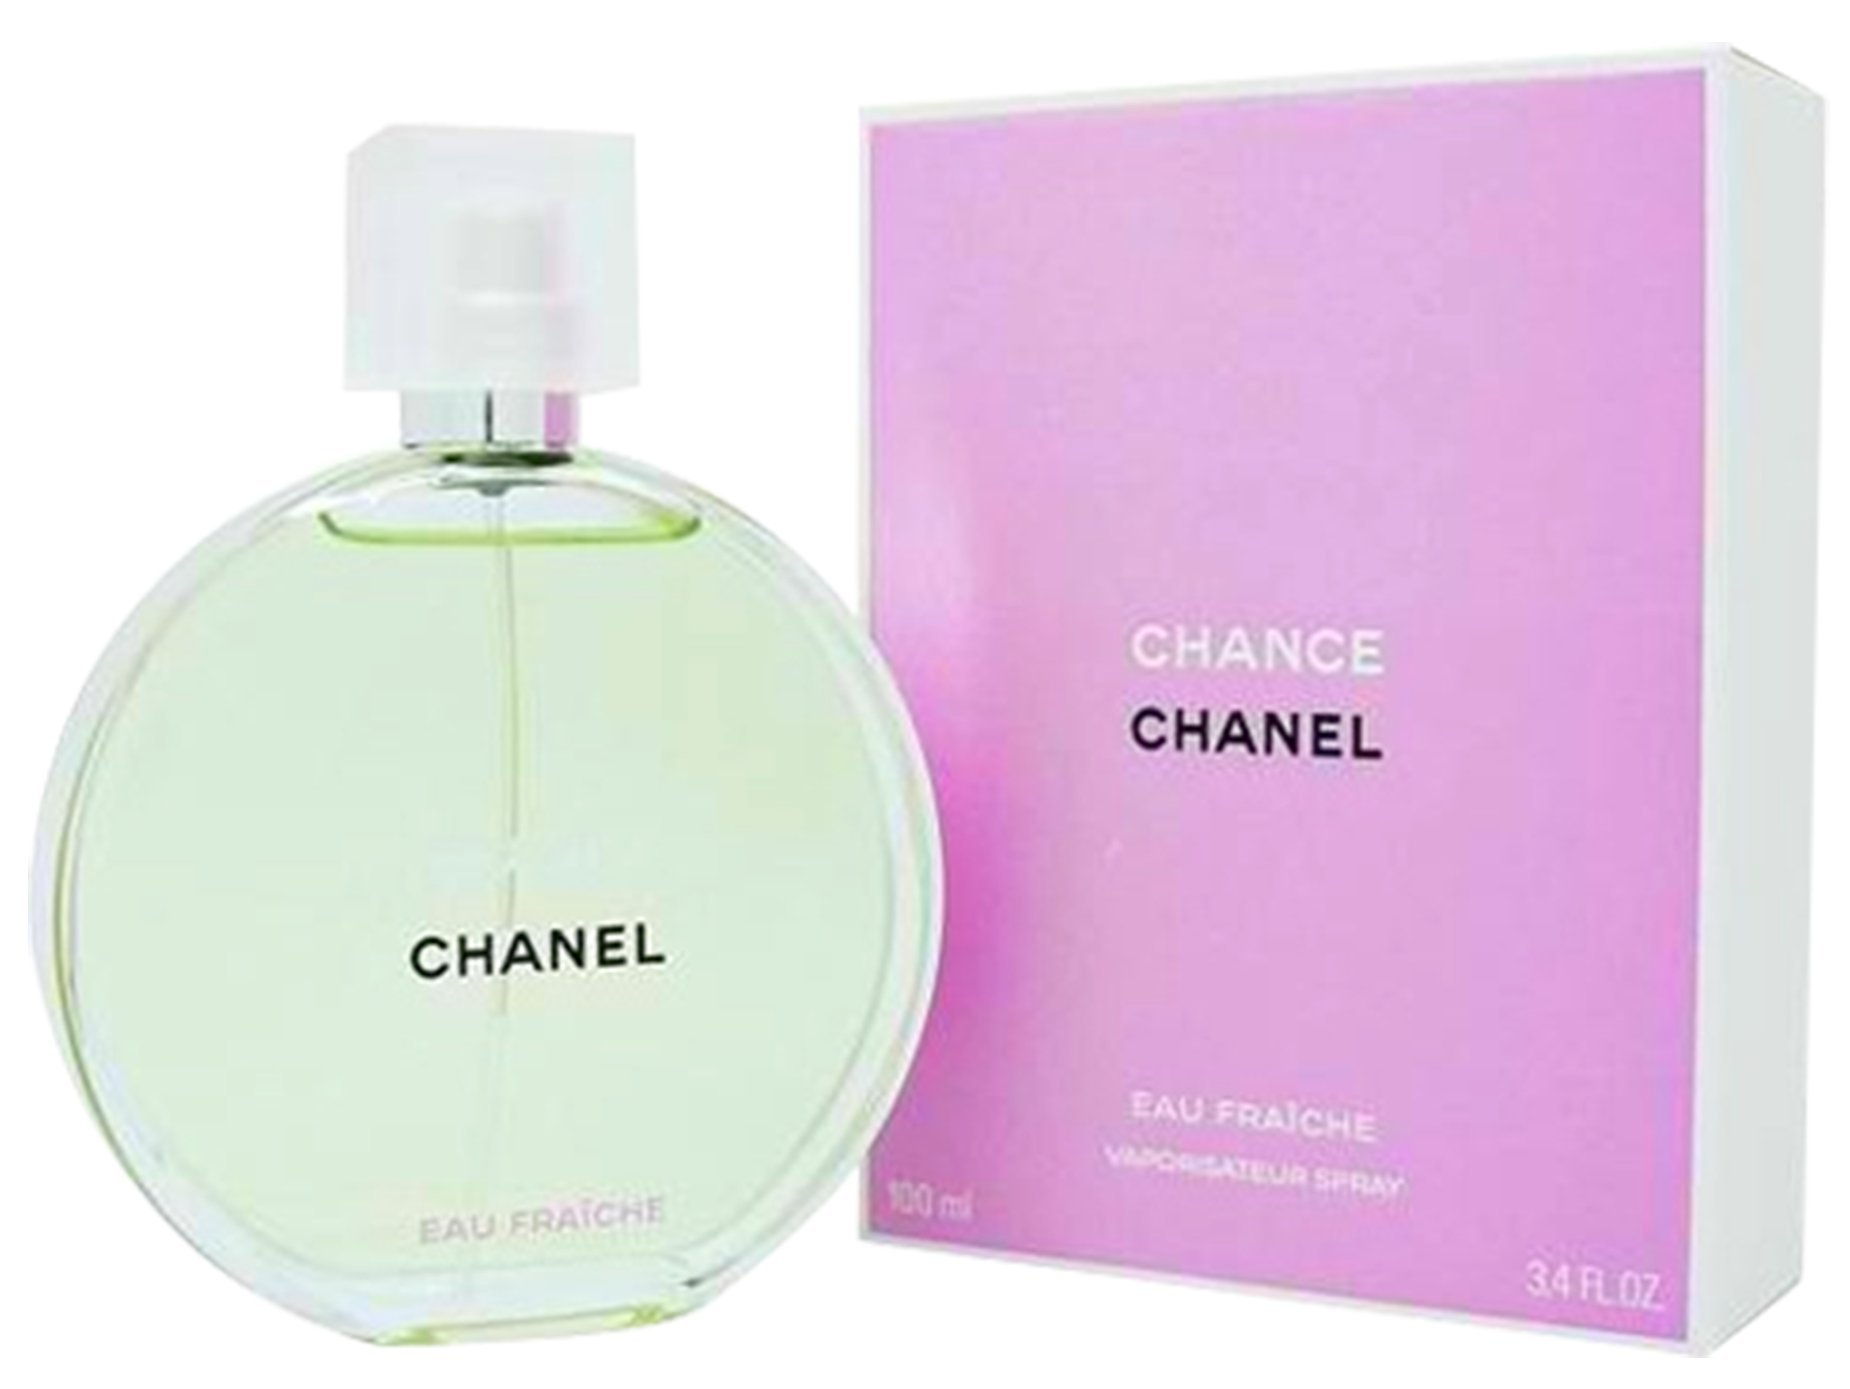 Chânel Chance Eau Fraiche Eau De Toilette Spray for Woman, EDP 3.4 Ounces 100 ML by Eau Fraiche